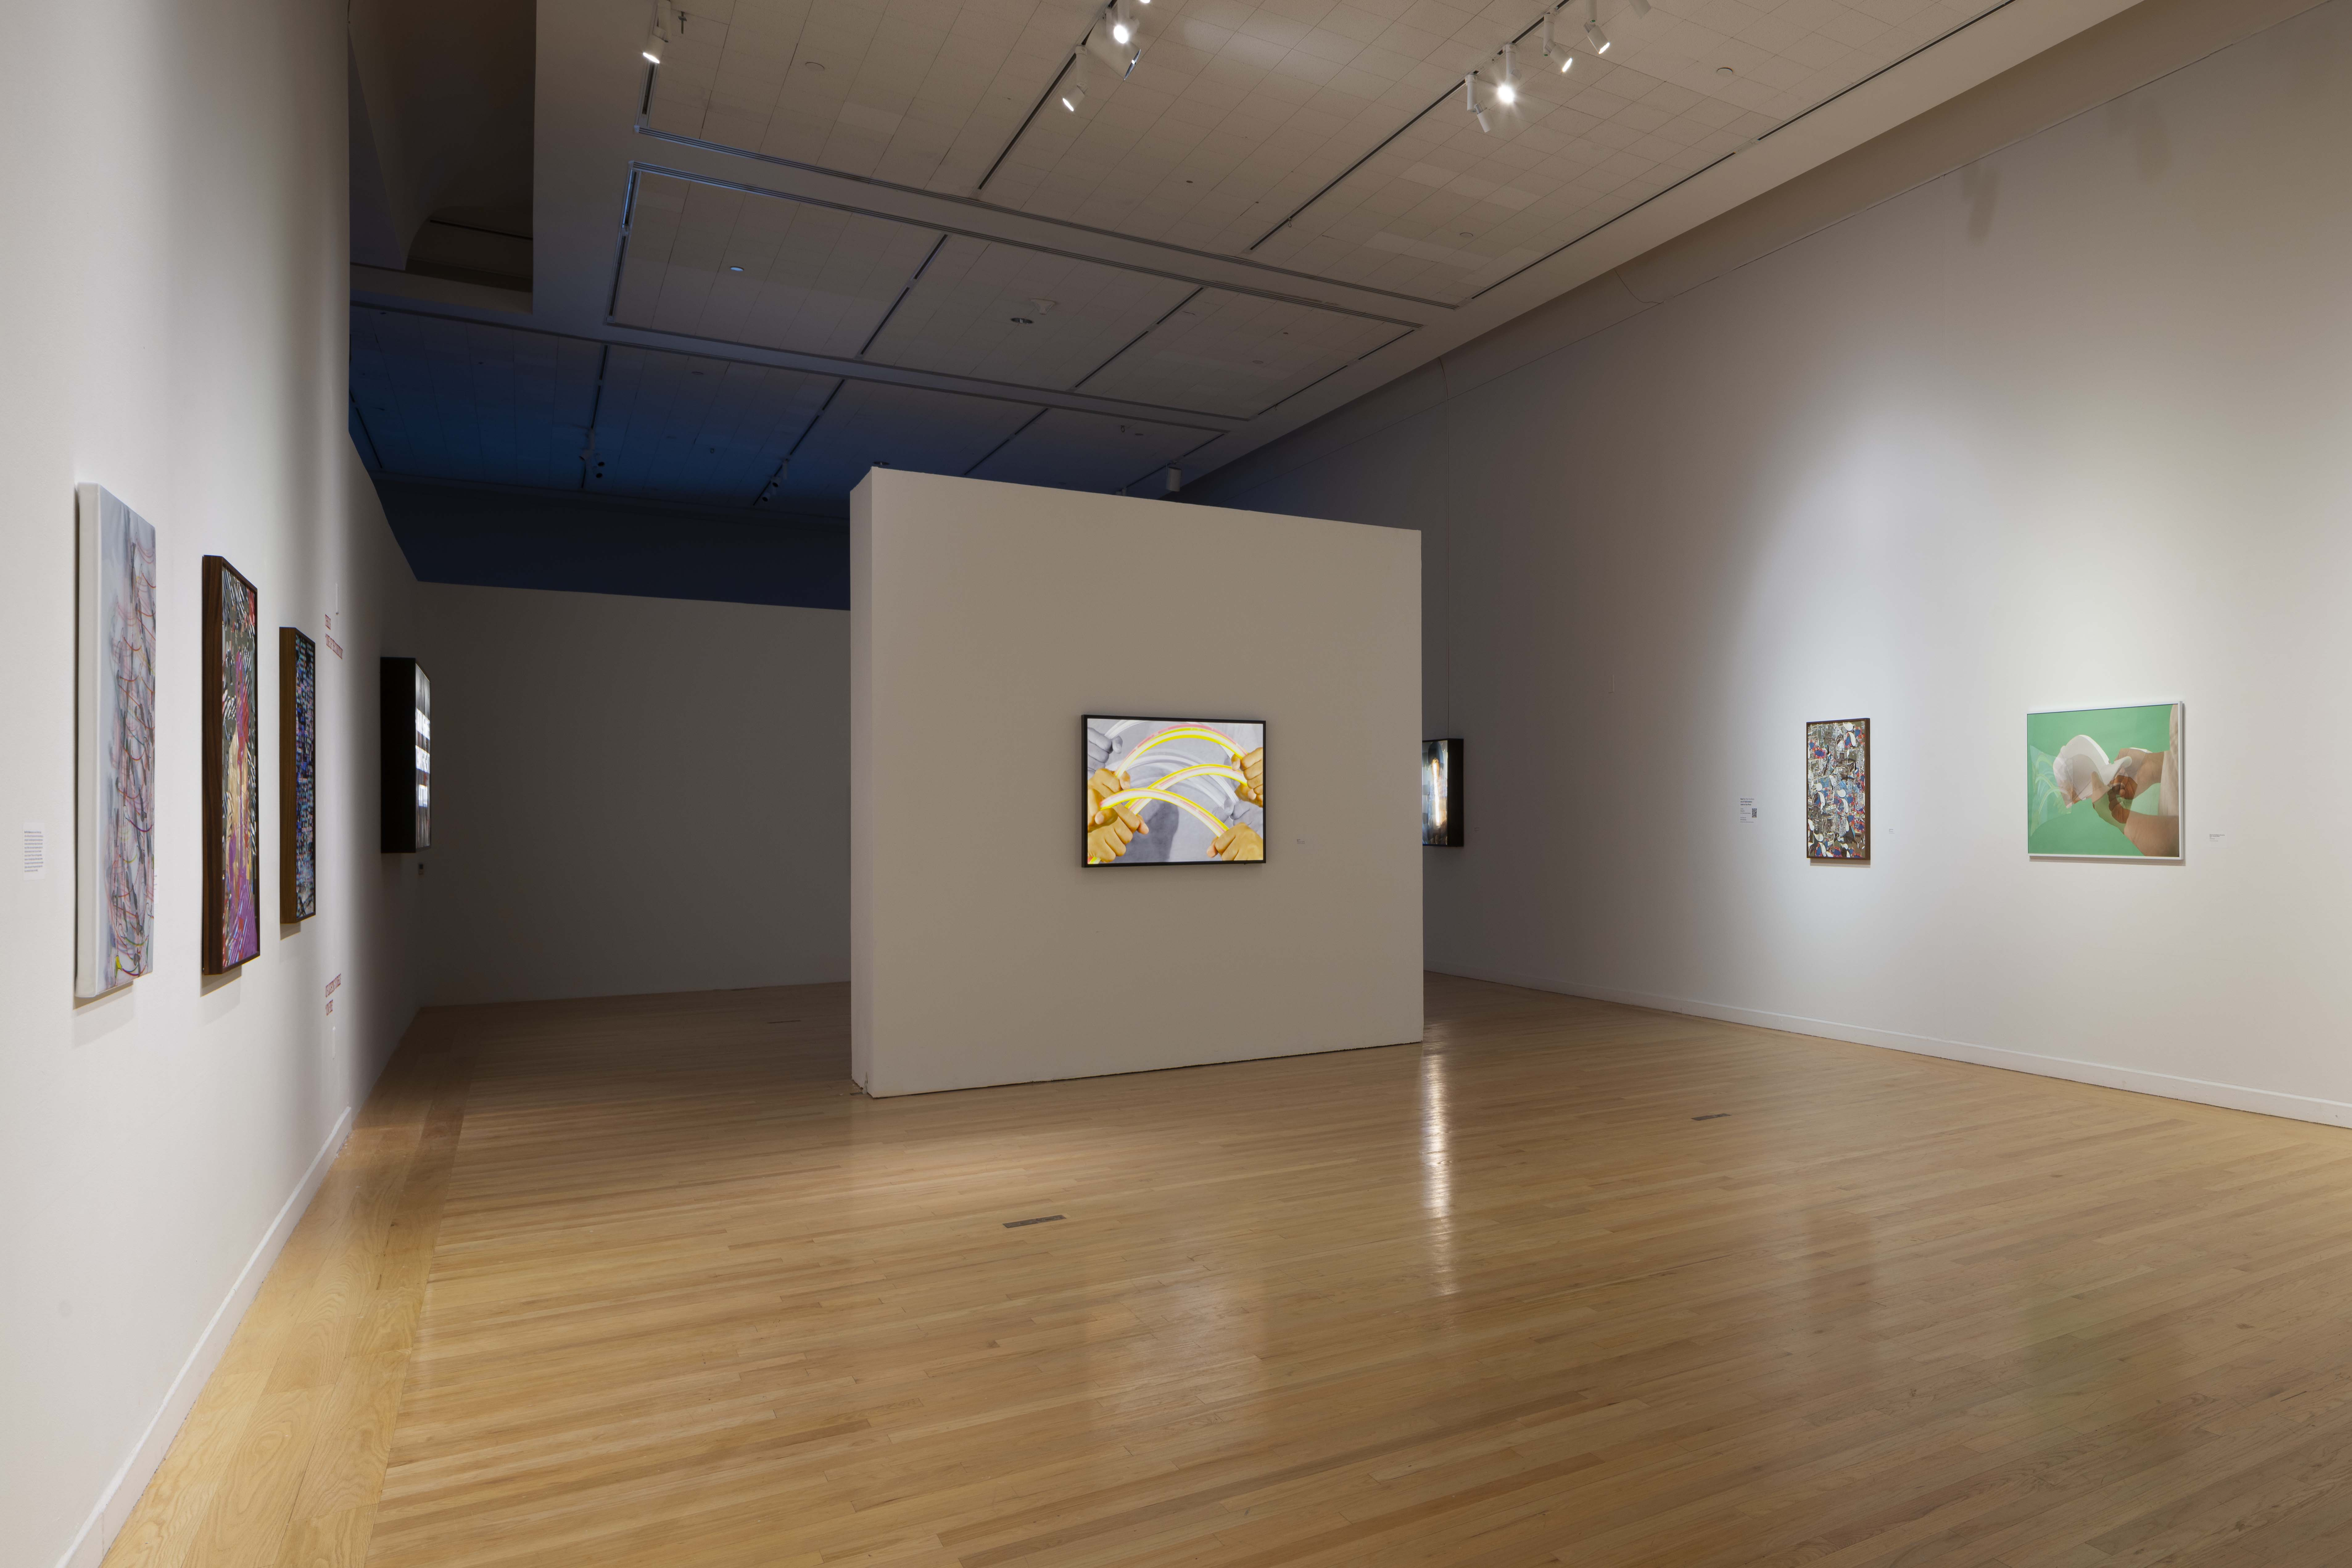 Installation view, Jibade-Khalil Huffman: Now That I Can Dance, Tufts University Art Gallery, Tufts University, Medford, MA, 2020. Photography by Peter Harris.